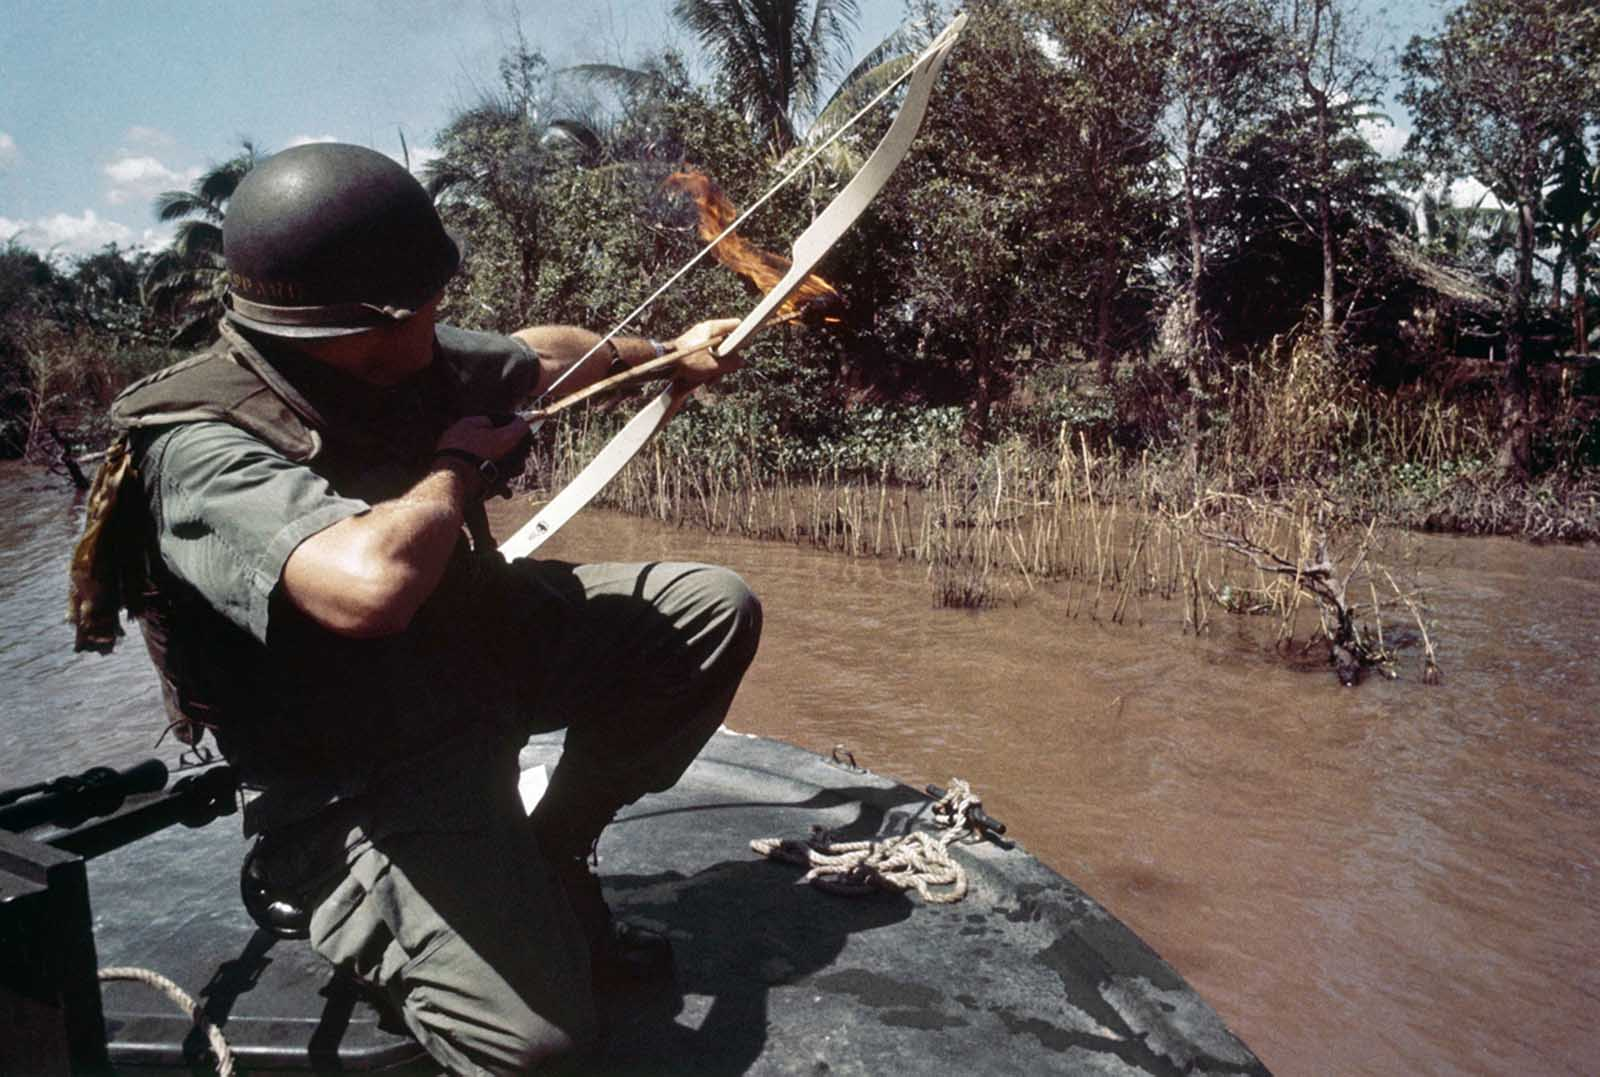 Lieutenant Commander Donald D. Sheppard, of Coronado, California, aims a flaming arrow at a bamboo hut concealing a fortified Viet Cong bunker on the banks of the Bassac River, Vietnam, on December 8, 1967.